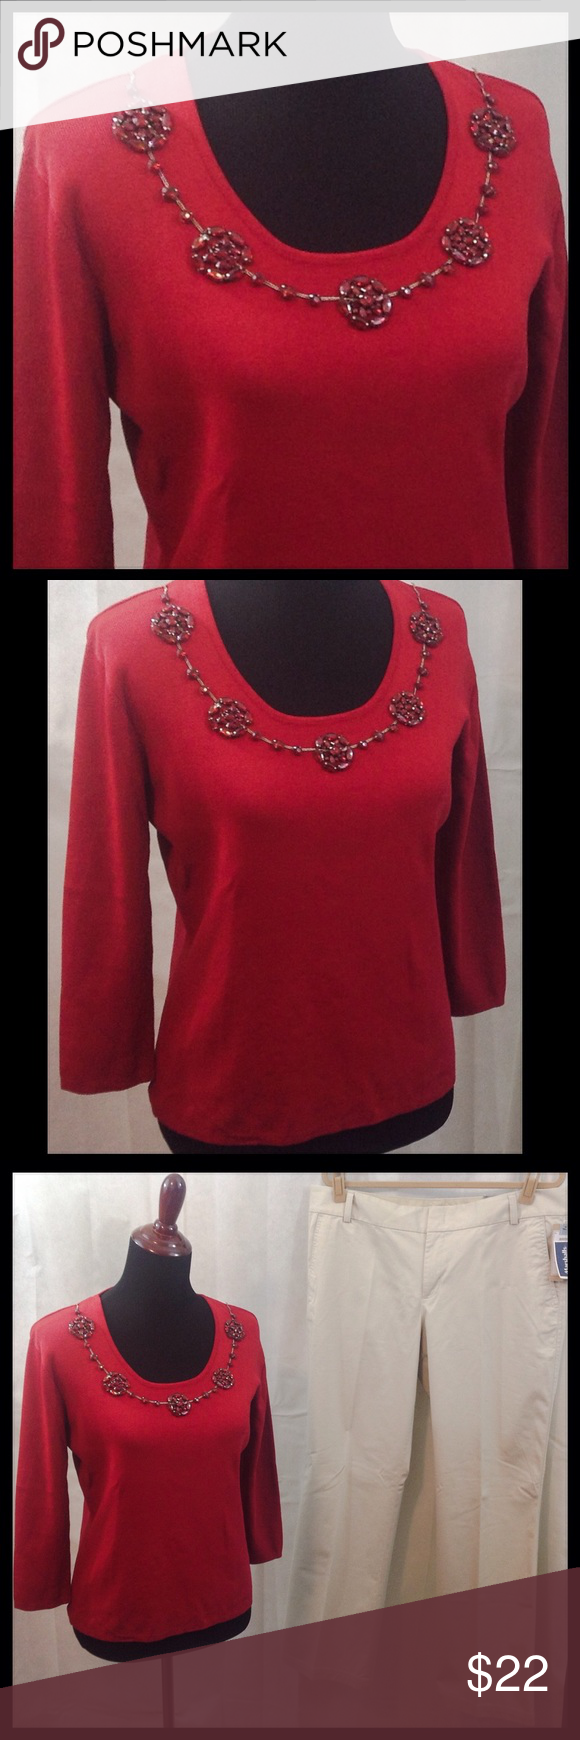 Joseph A. Rust Knit Top NWOT. Joseph A. rust colored, knit top with beautifully beaded front neckline. Hand wash cold. Dockers listed separately. joseph A. Tops